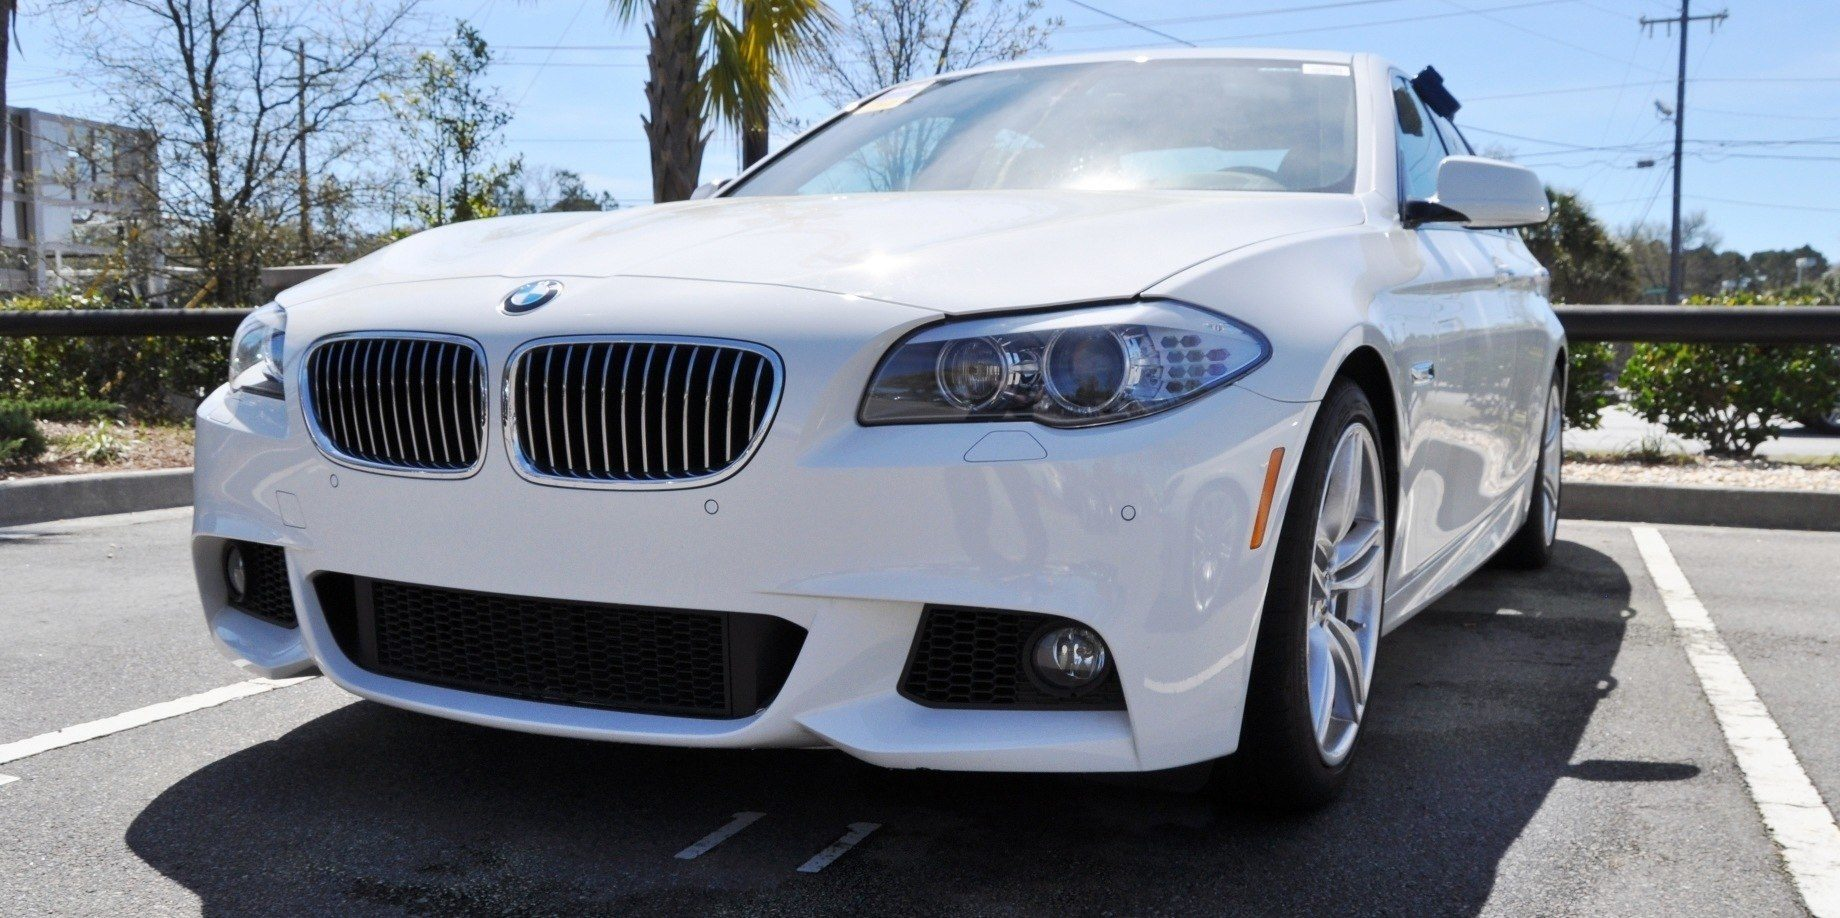 HD Video Road Test -- 2013 BMW 535i M Sport RWD -- Refined but Still Balanced, FAST and Posh 12